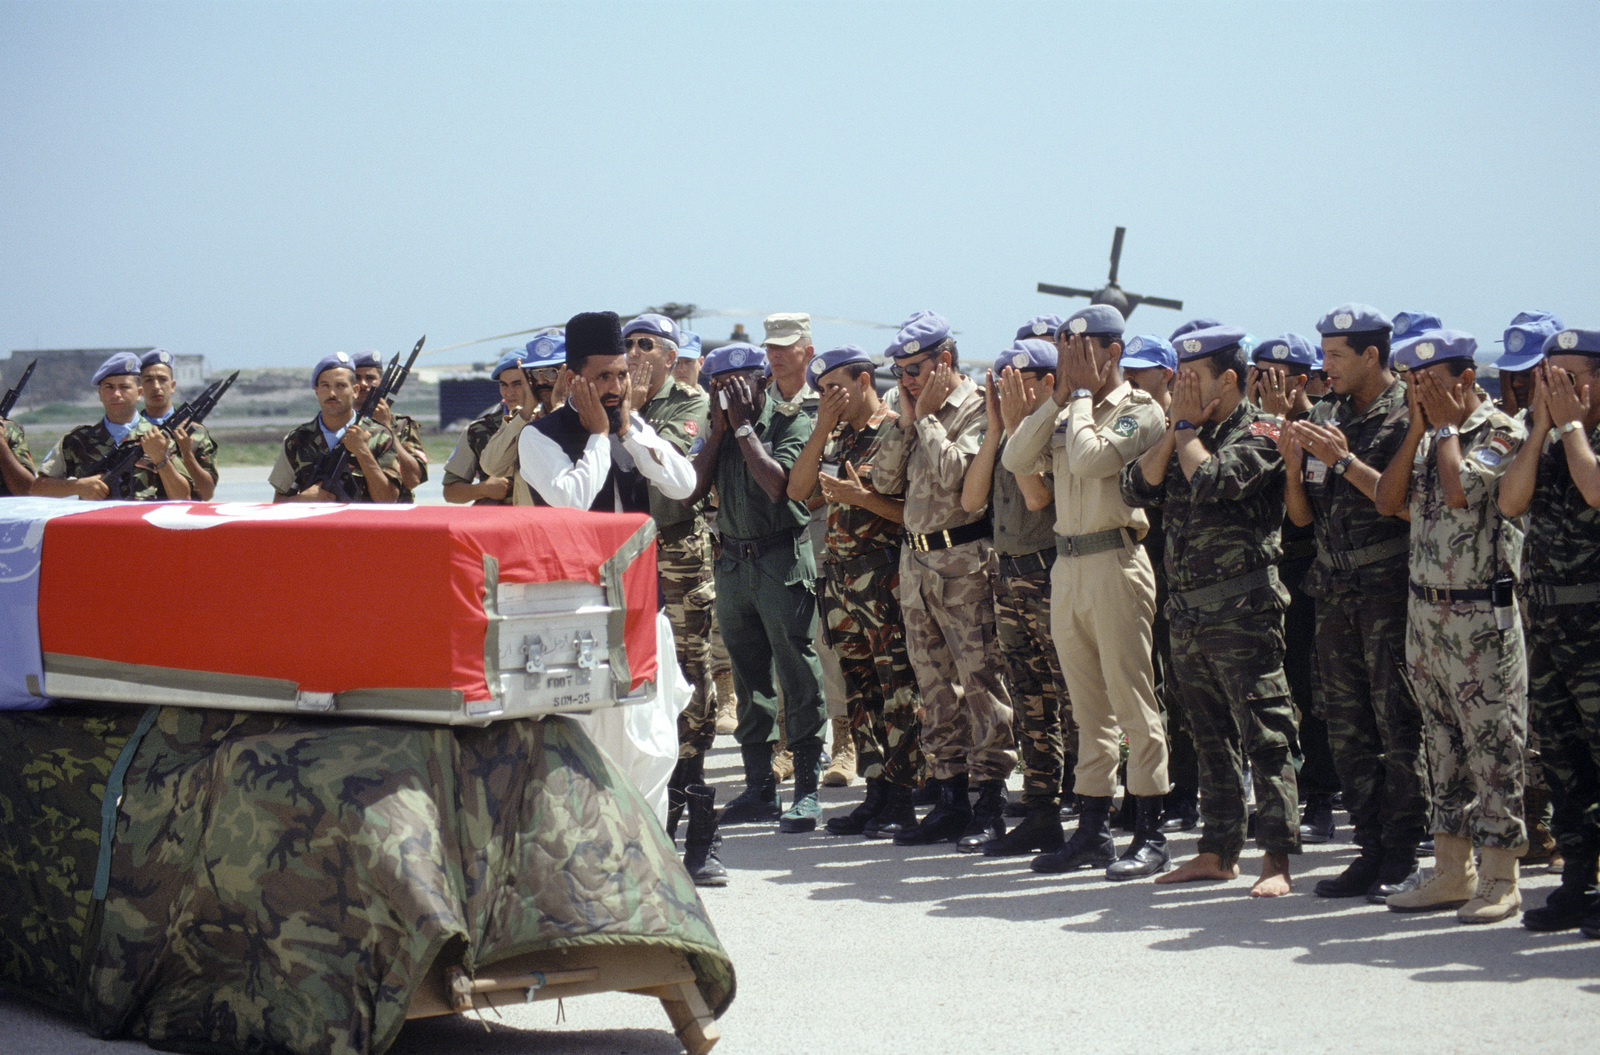 A Tunisian priest performs the memorial service for a fallen soldier killed in Somalia. The soldier was killed when an American M-60 machine gun accidentally discharged during convoy operations